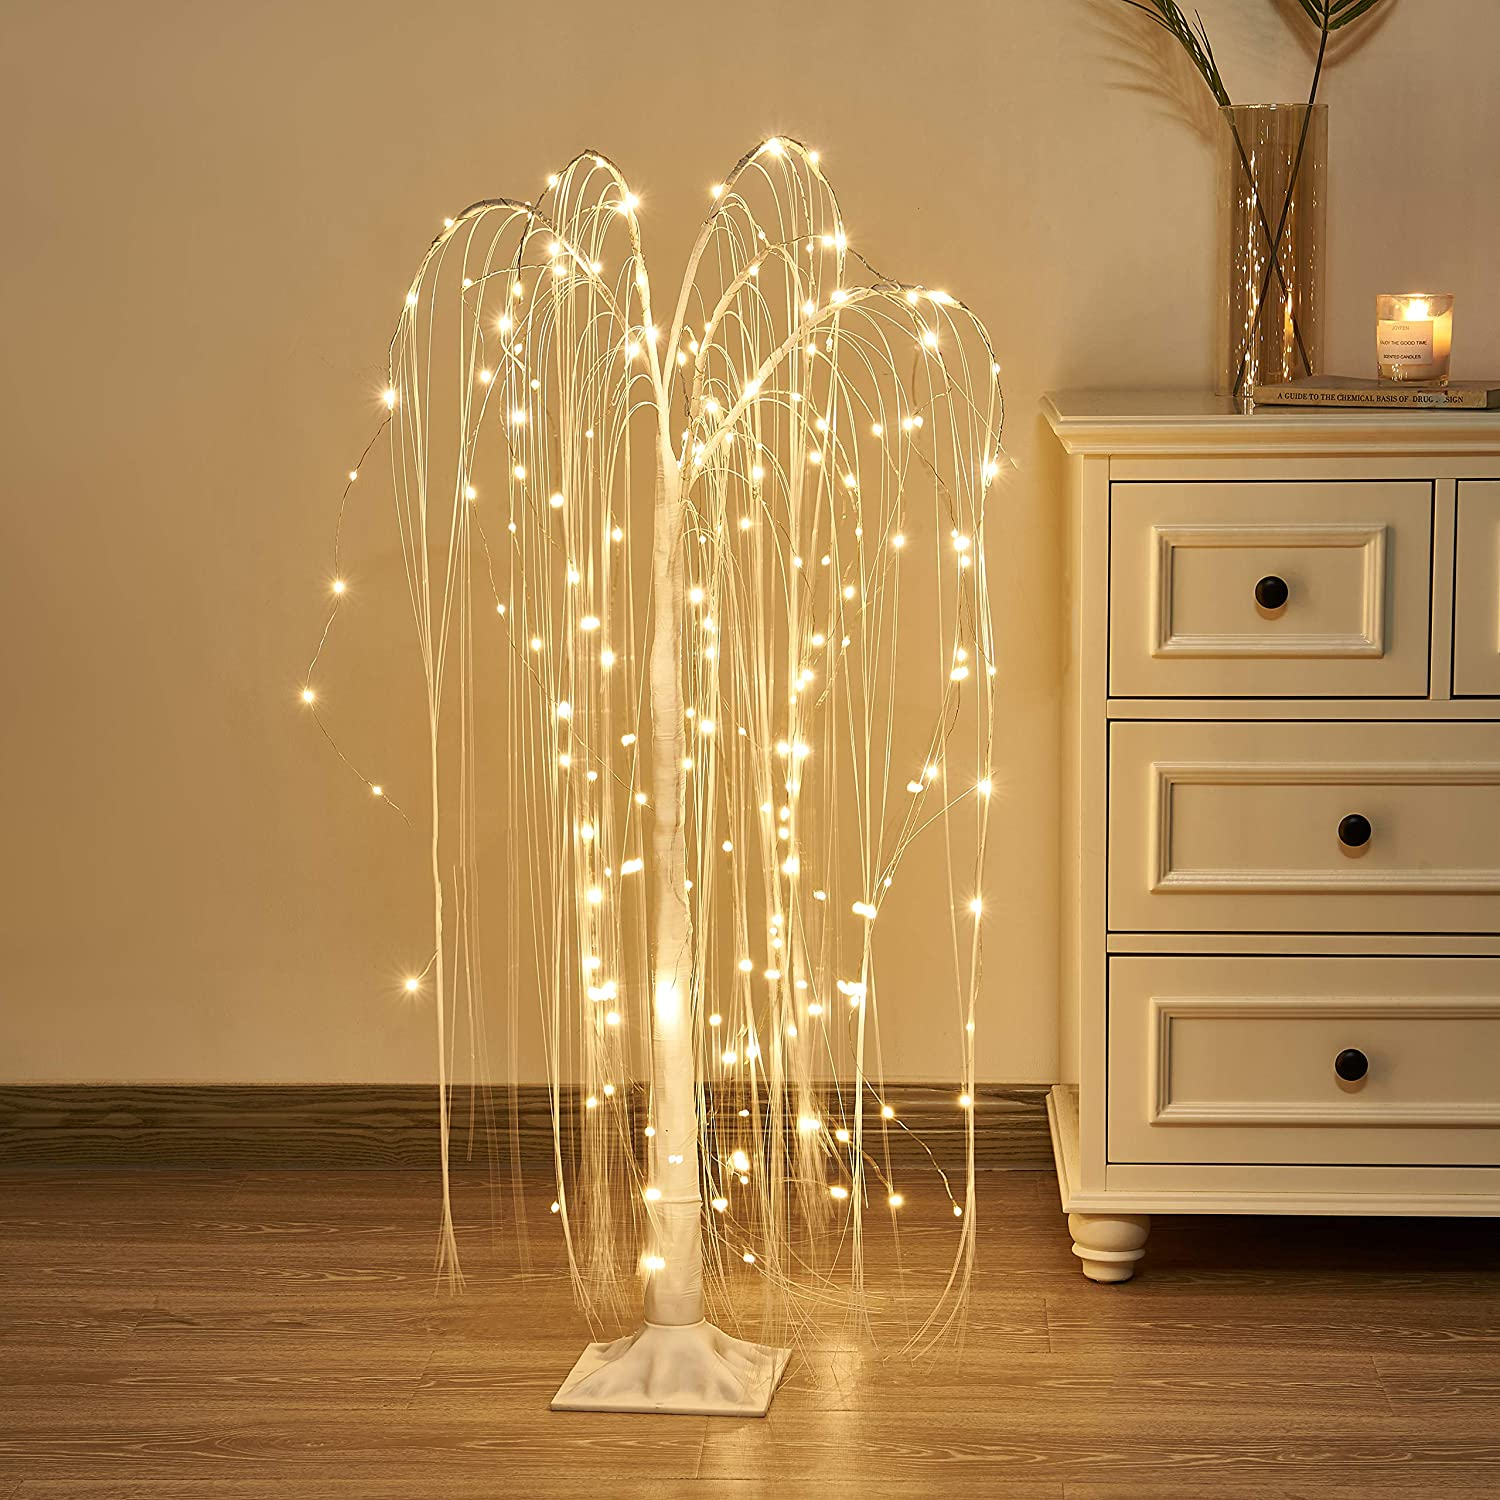 Vanthylit 4FT 180LED White Willow Tree Light with Fairy Lights Warm White for Home Wedding Holiday Party Indoor and Outdoor Decor